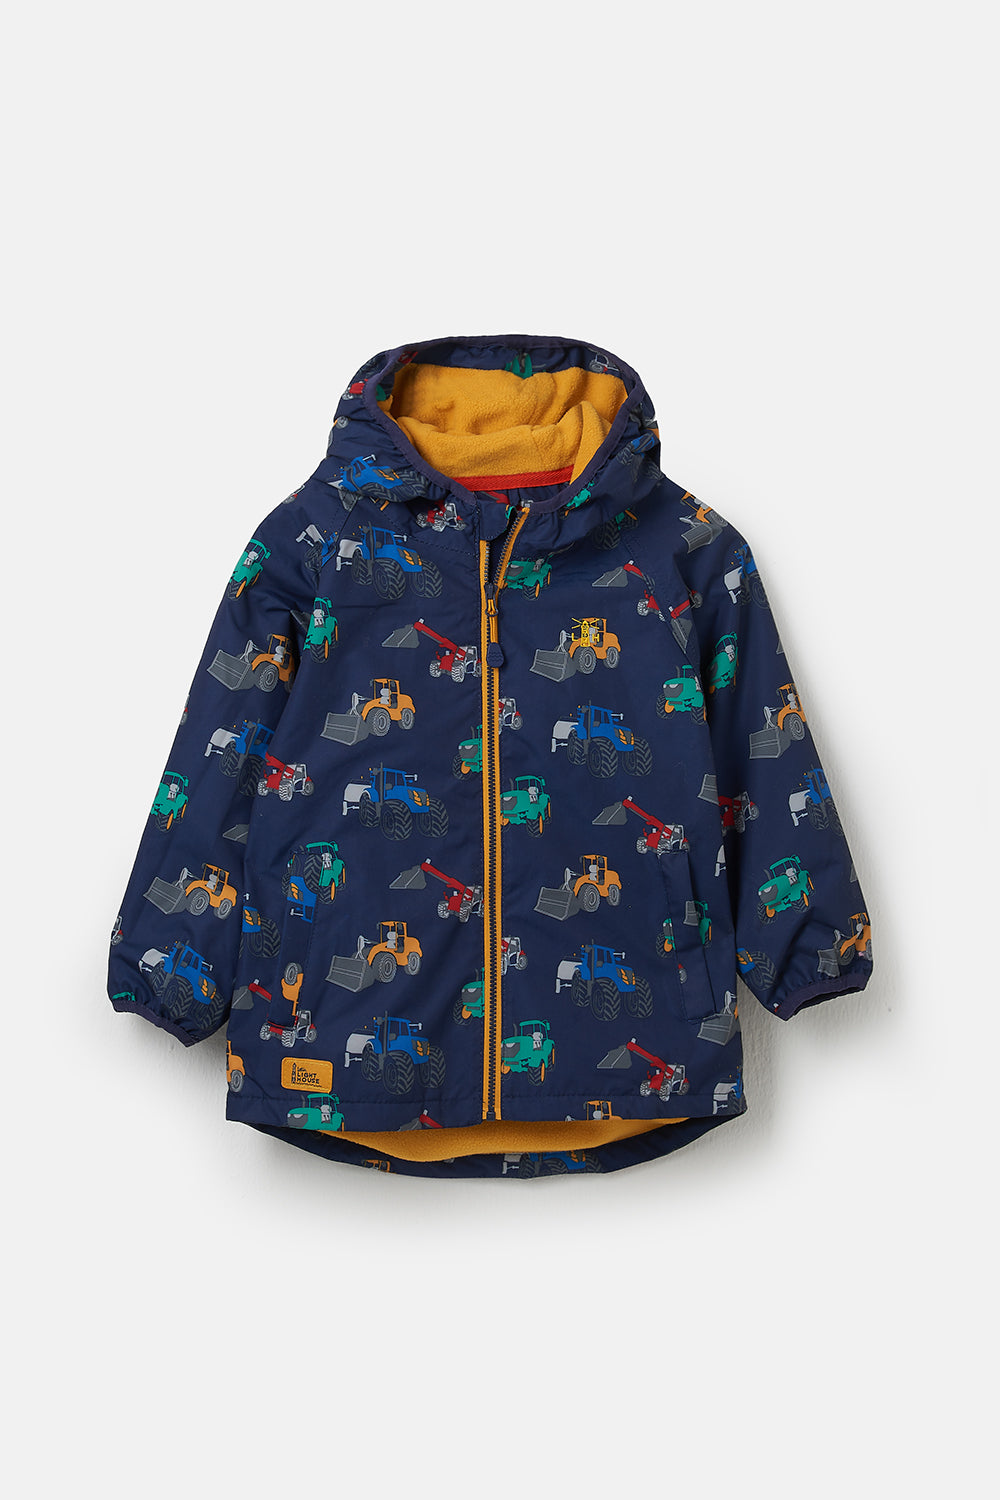 Lighthouse Lucas Boys Warm Waterproof Raincoat - Tractor Print